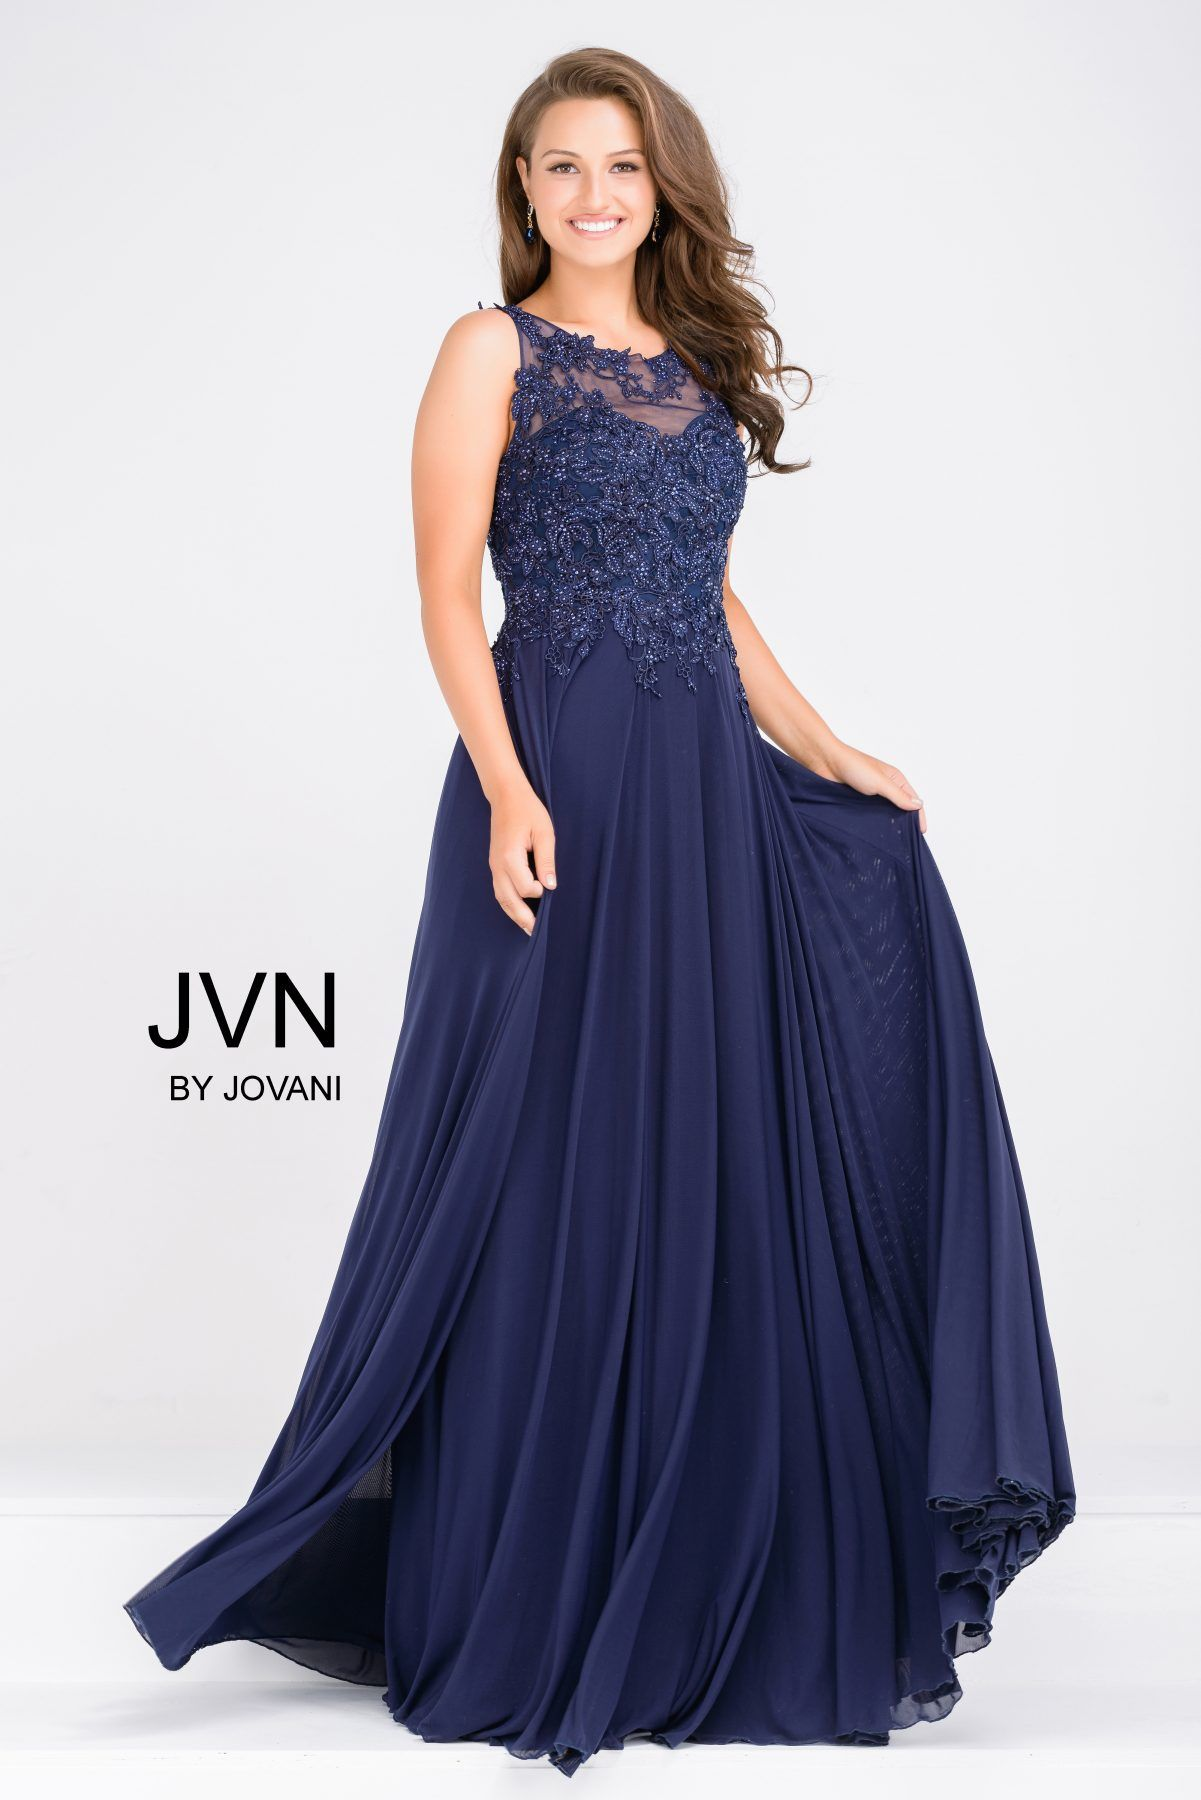 Jovani JVN47950 - We carry amazing evening gowns by high-end ...